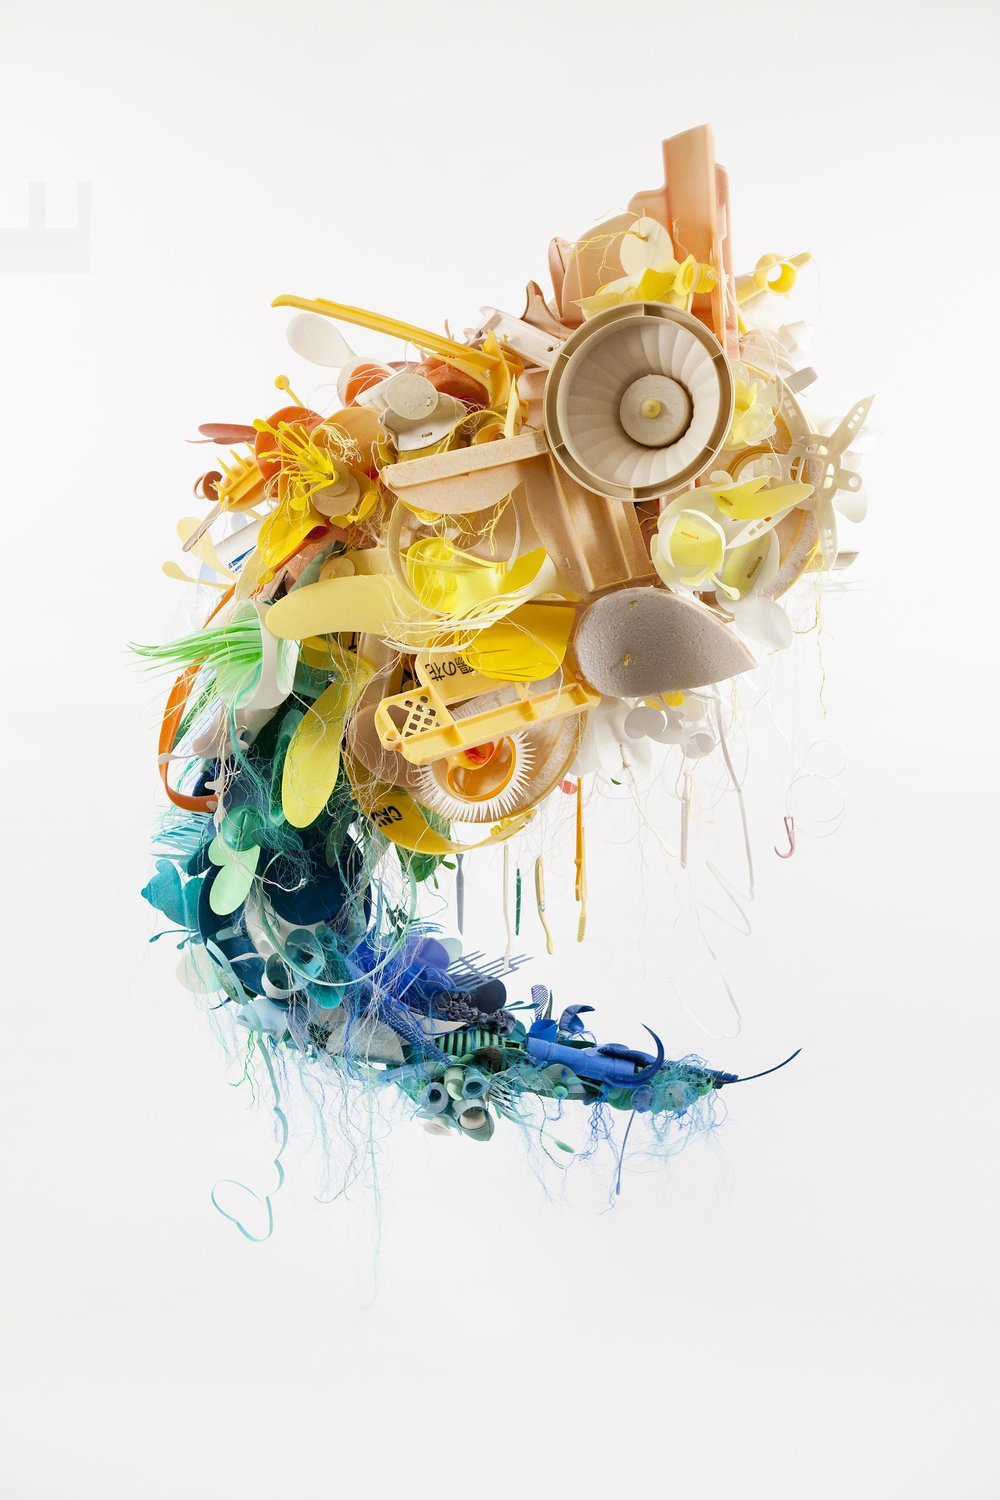 Sculpture created from plastic debris  by Project Vortex's founding artist  Aurora Robson